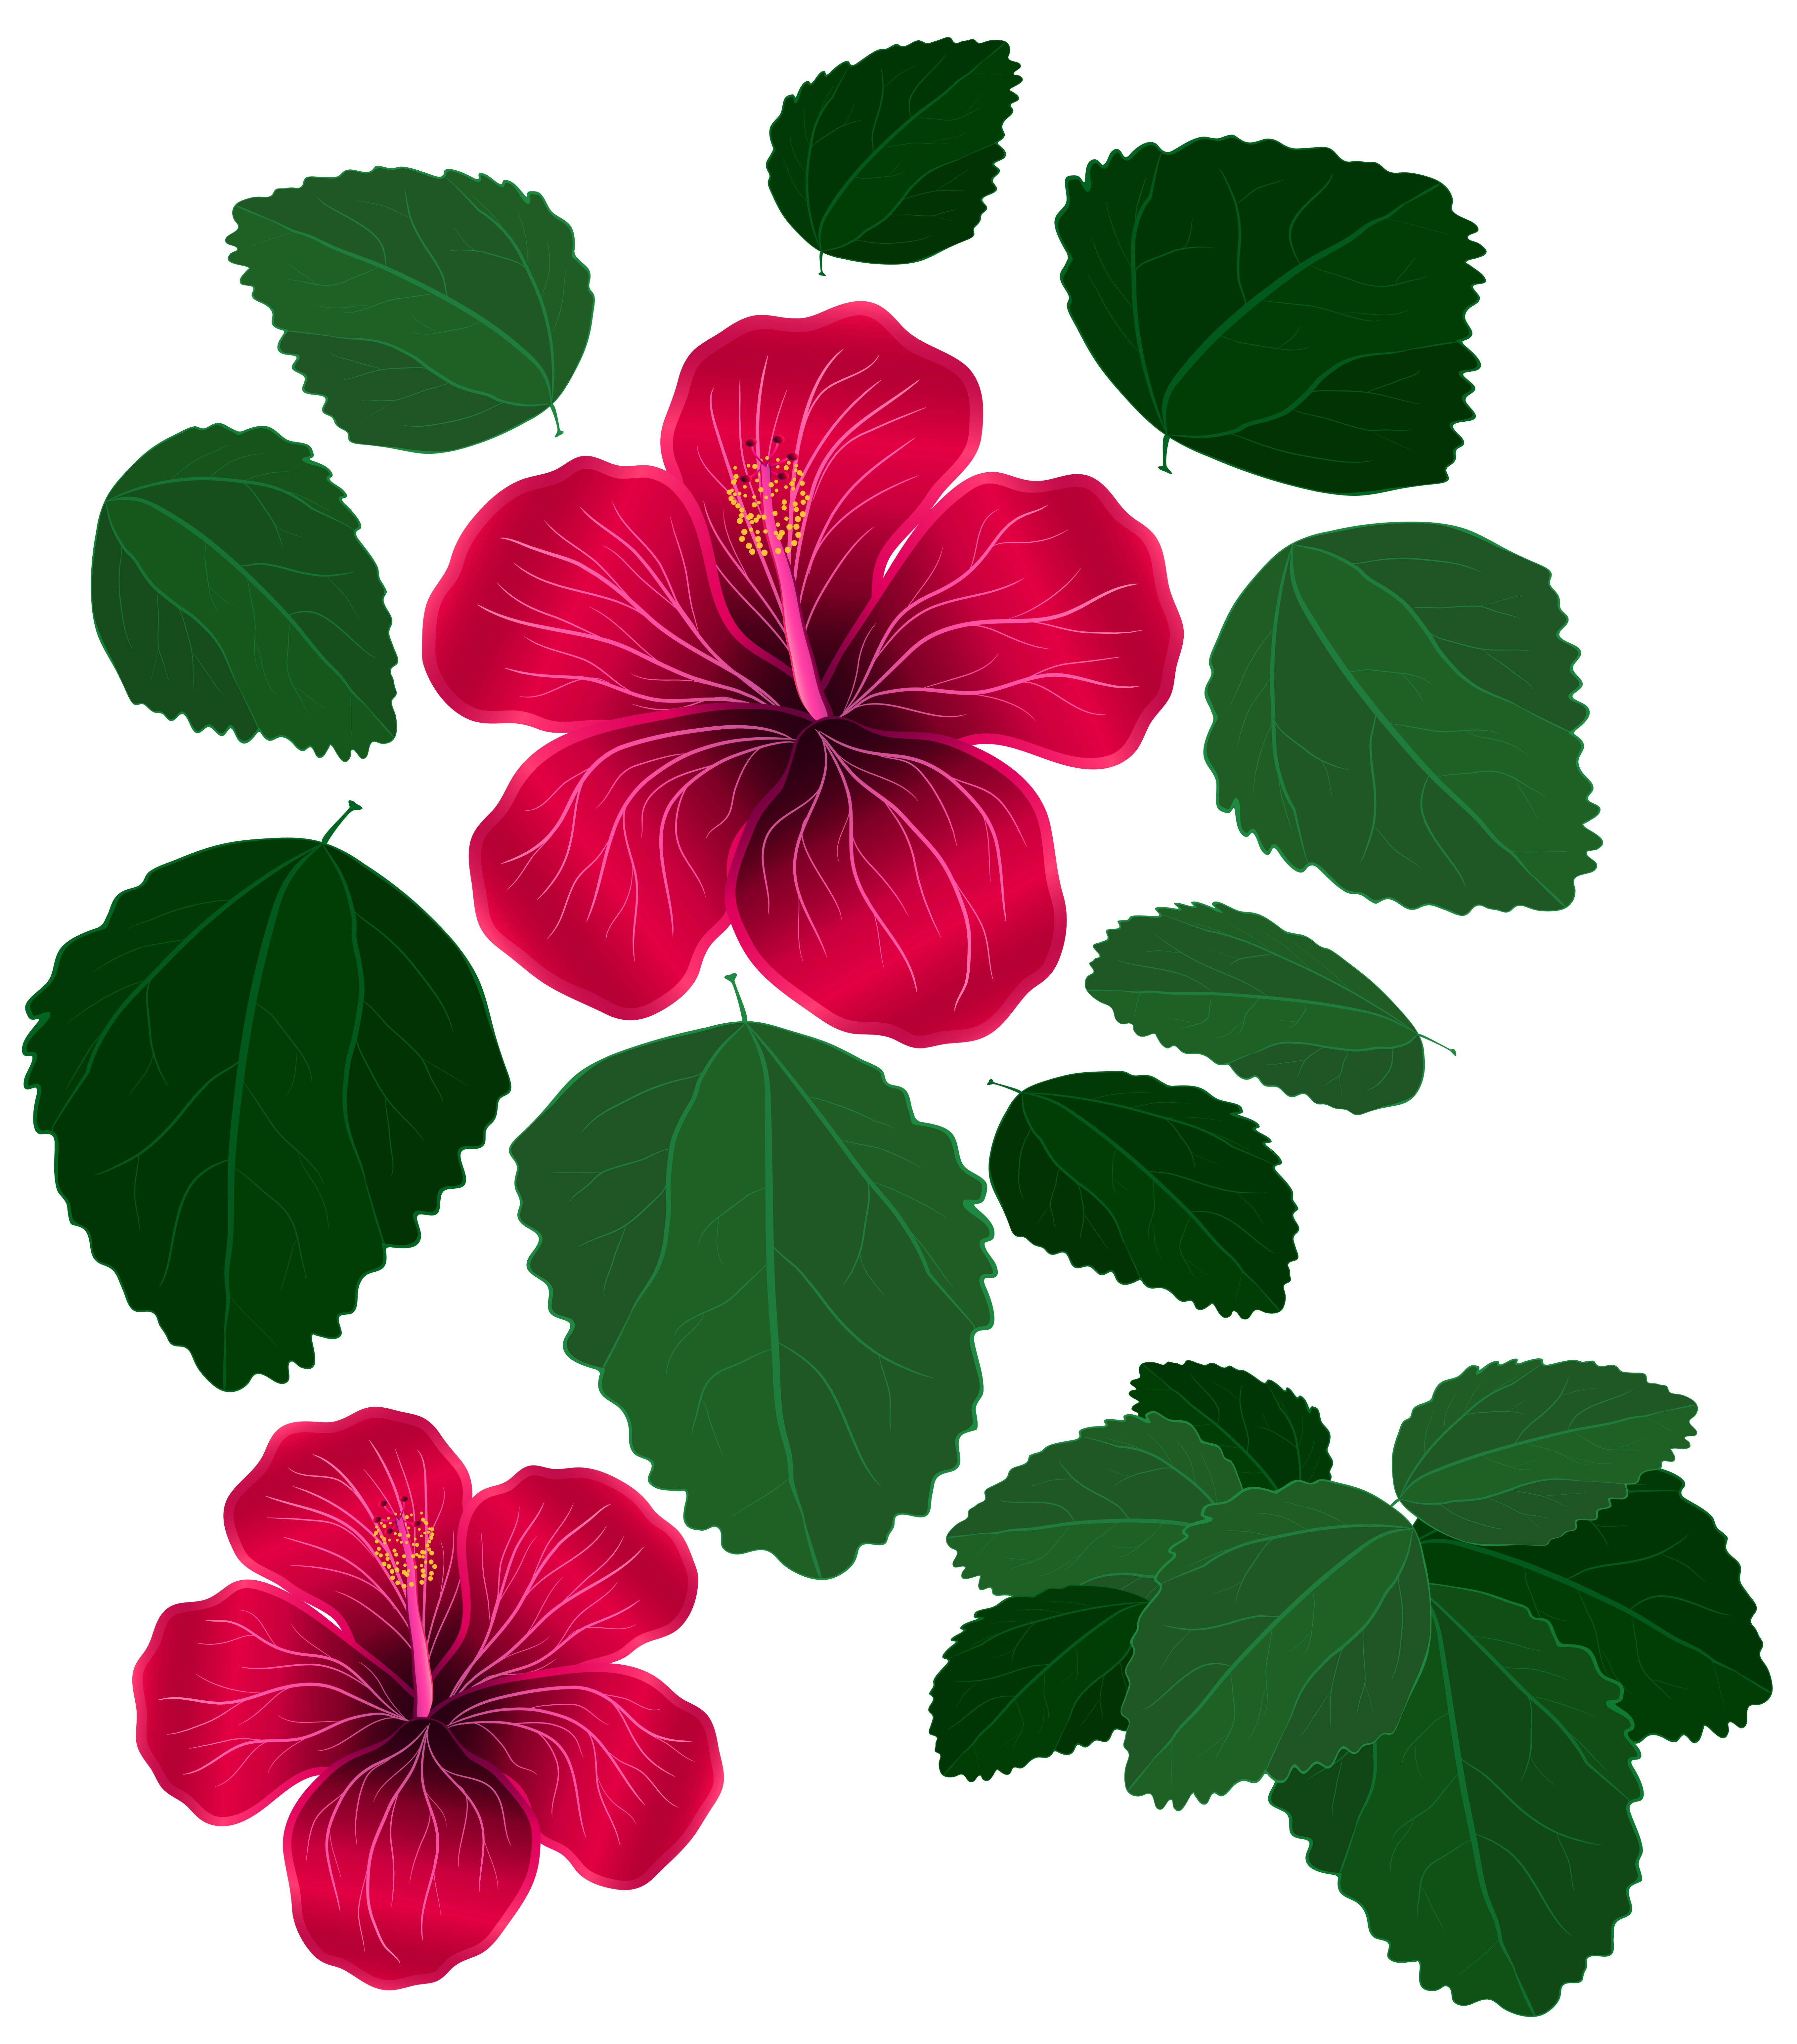 Flower and Leaves for Decorations Transparent Clipart | Gallery ...